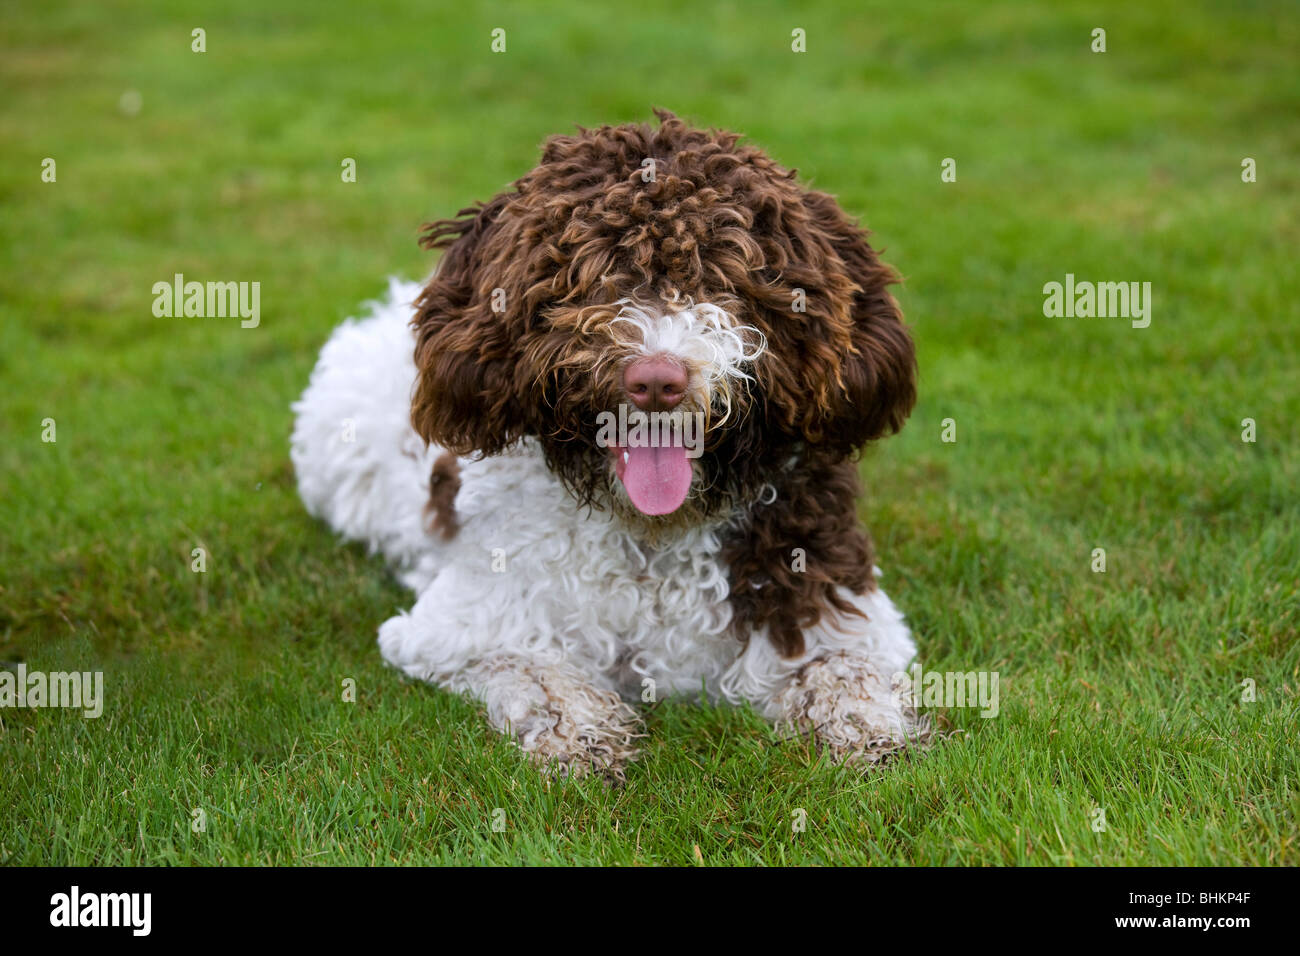 Spanish Water dog or Perro de Agua Espanol (Canis lupus familiaris) lying in garden - Stock Image